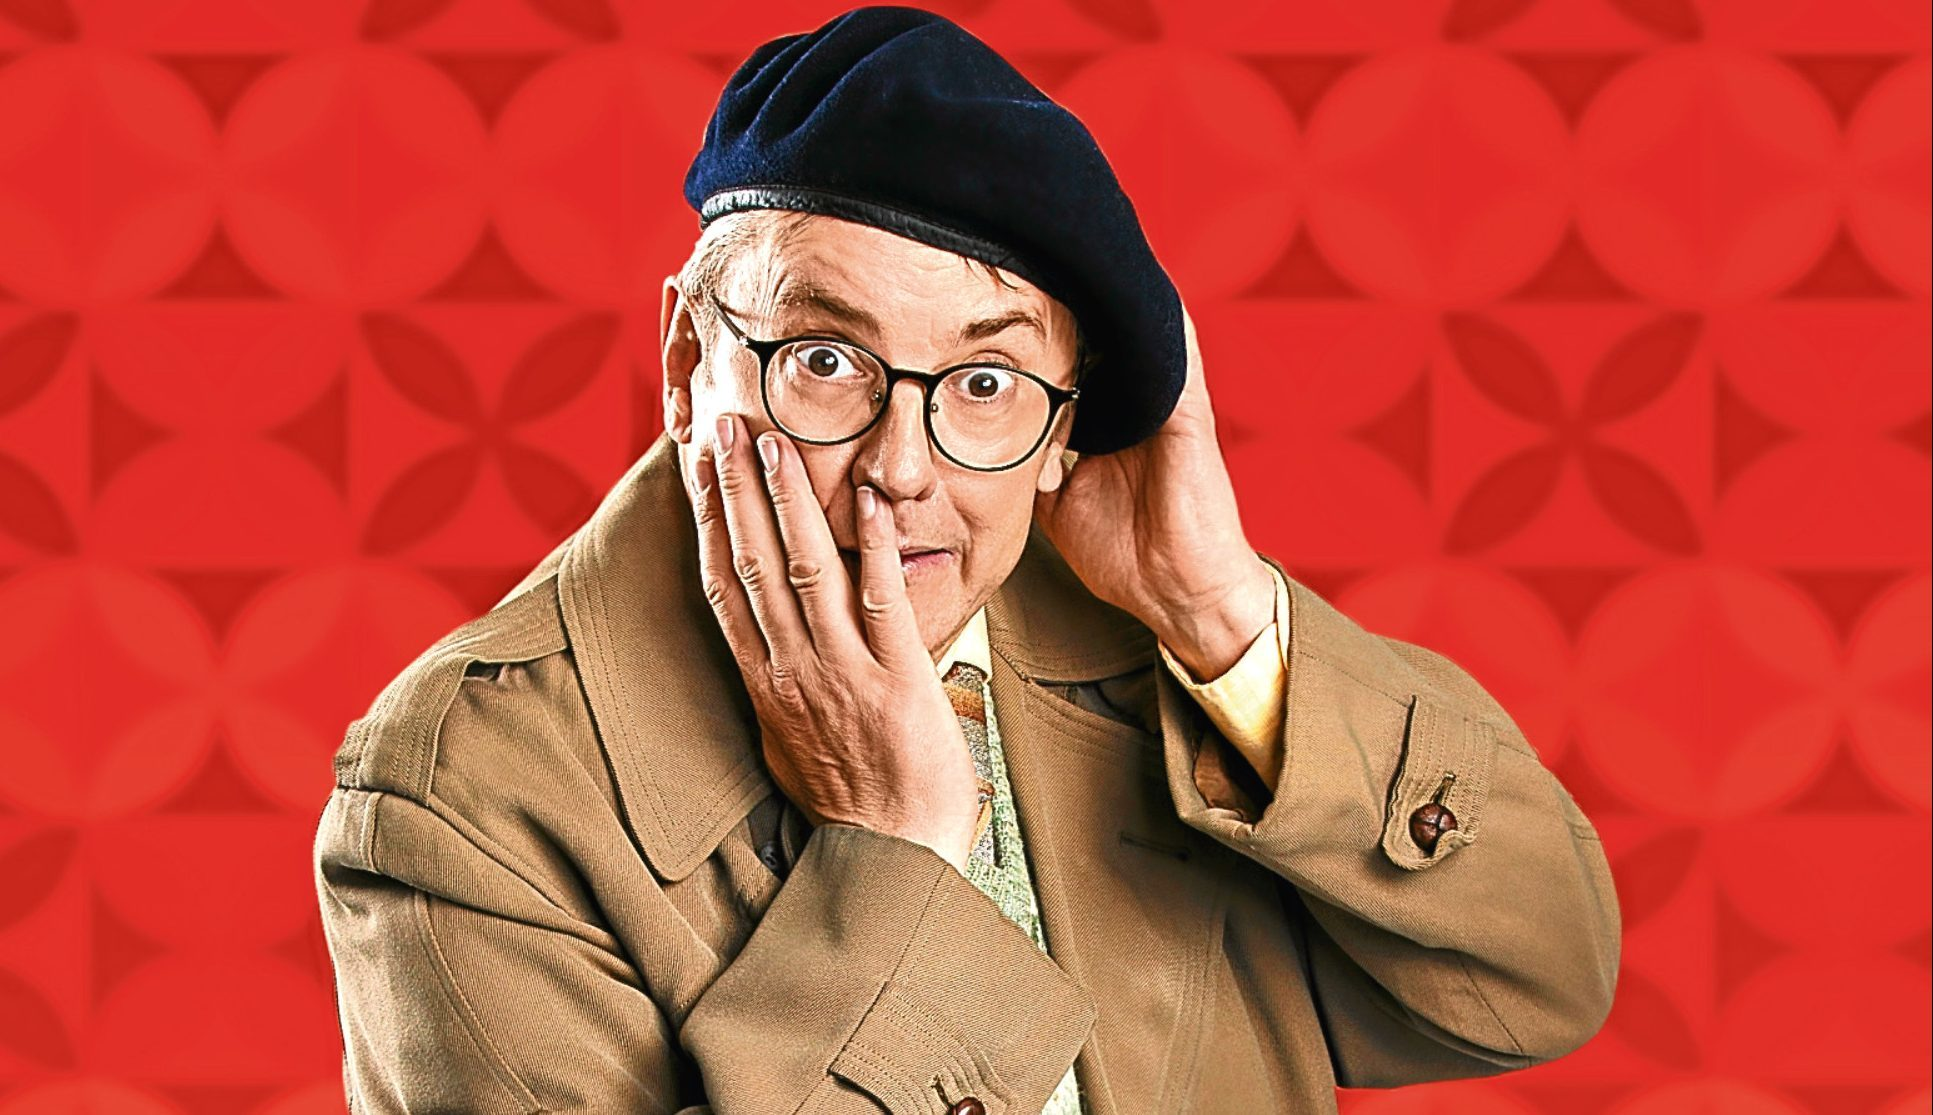 Joe Pasquale plays Frank Spencer in the show